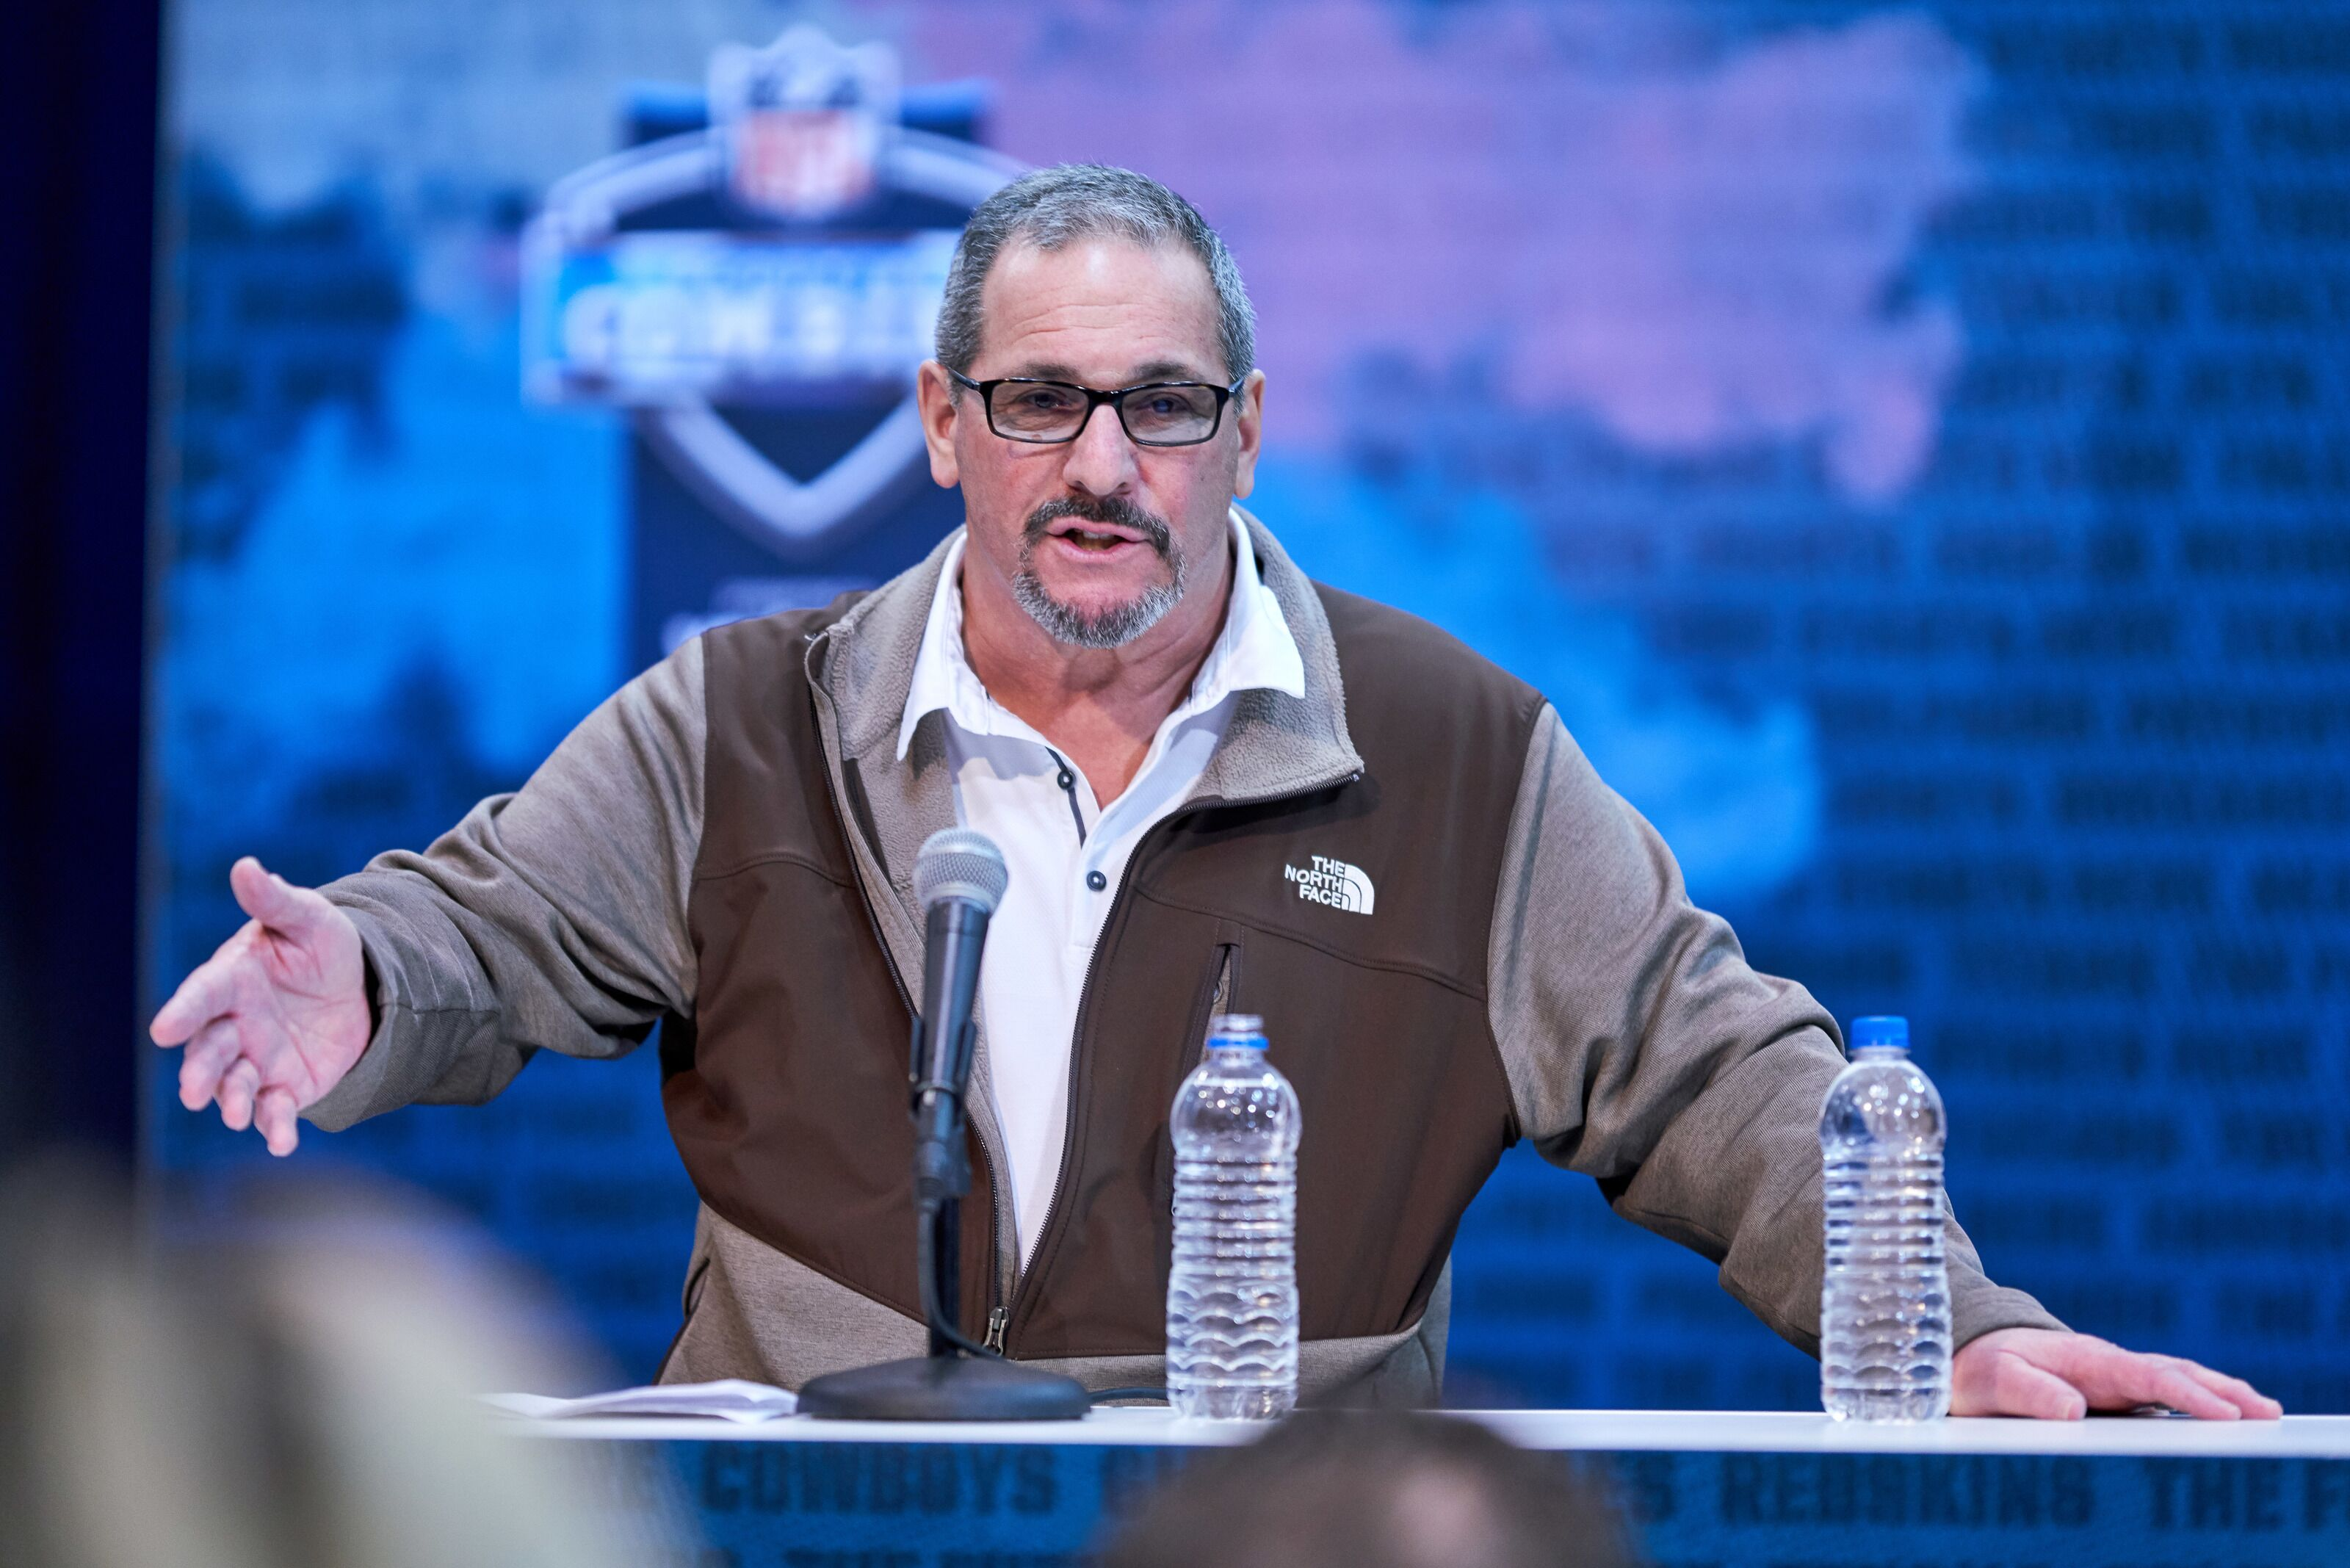 INDIANAPOLIS, IN - FEBRUARY 27: New York Giants general manager Dave Gettleman speaks to the media during the NFL Scouting Combine on February 27, 2019 at the Indiana Convention Center in Indianapolis, IN. (Photo by Robin Alam/Icon Sportswire via Getty Images)